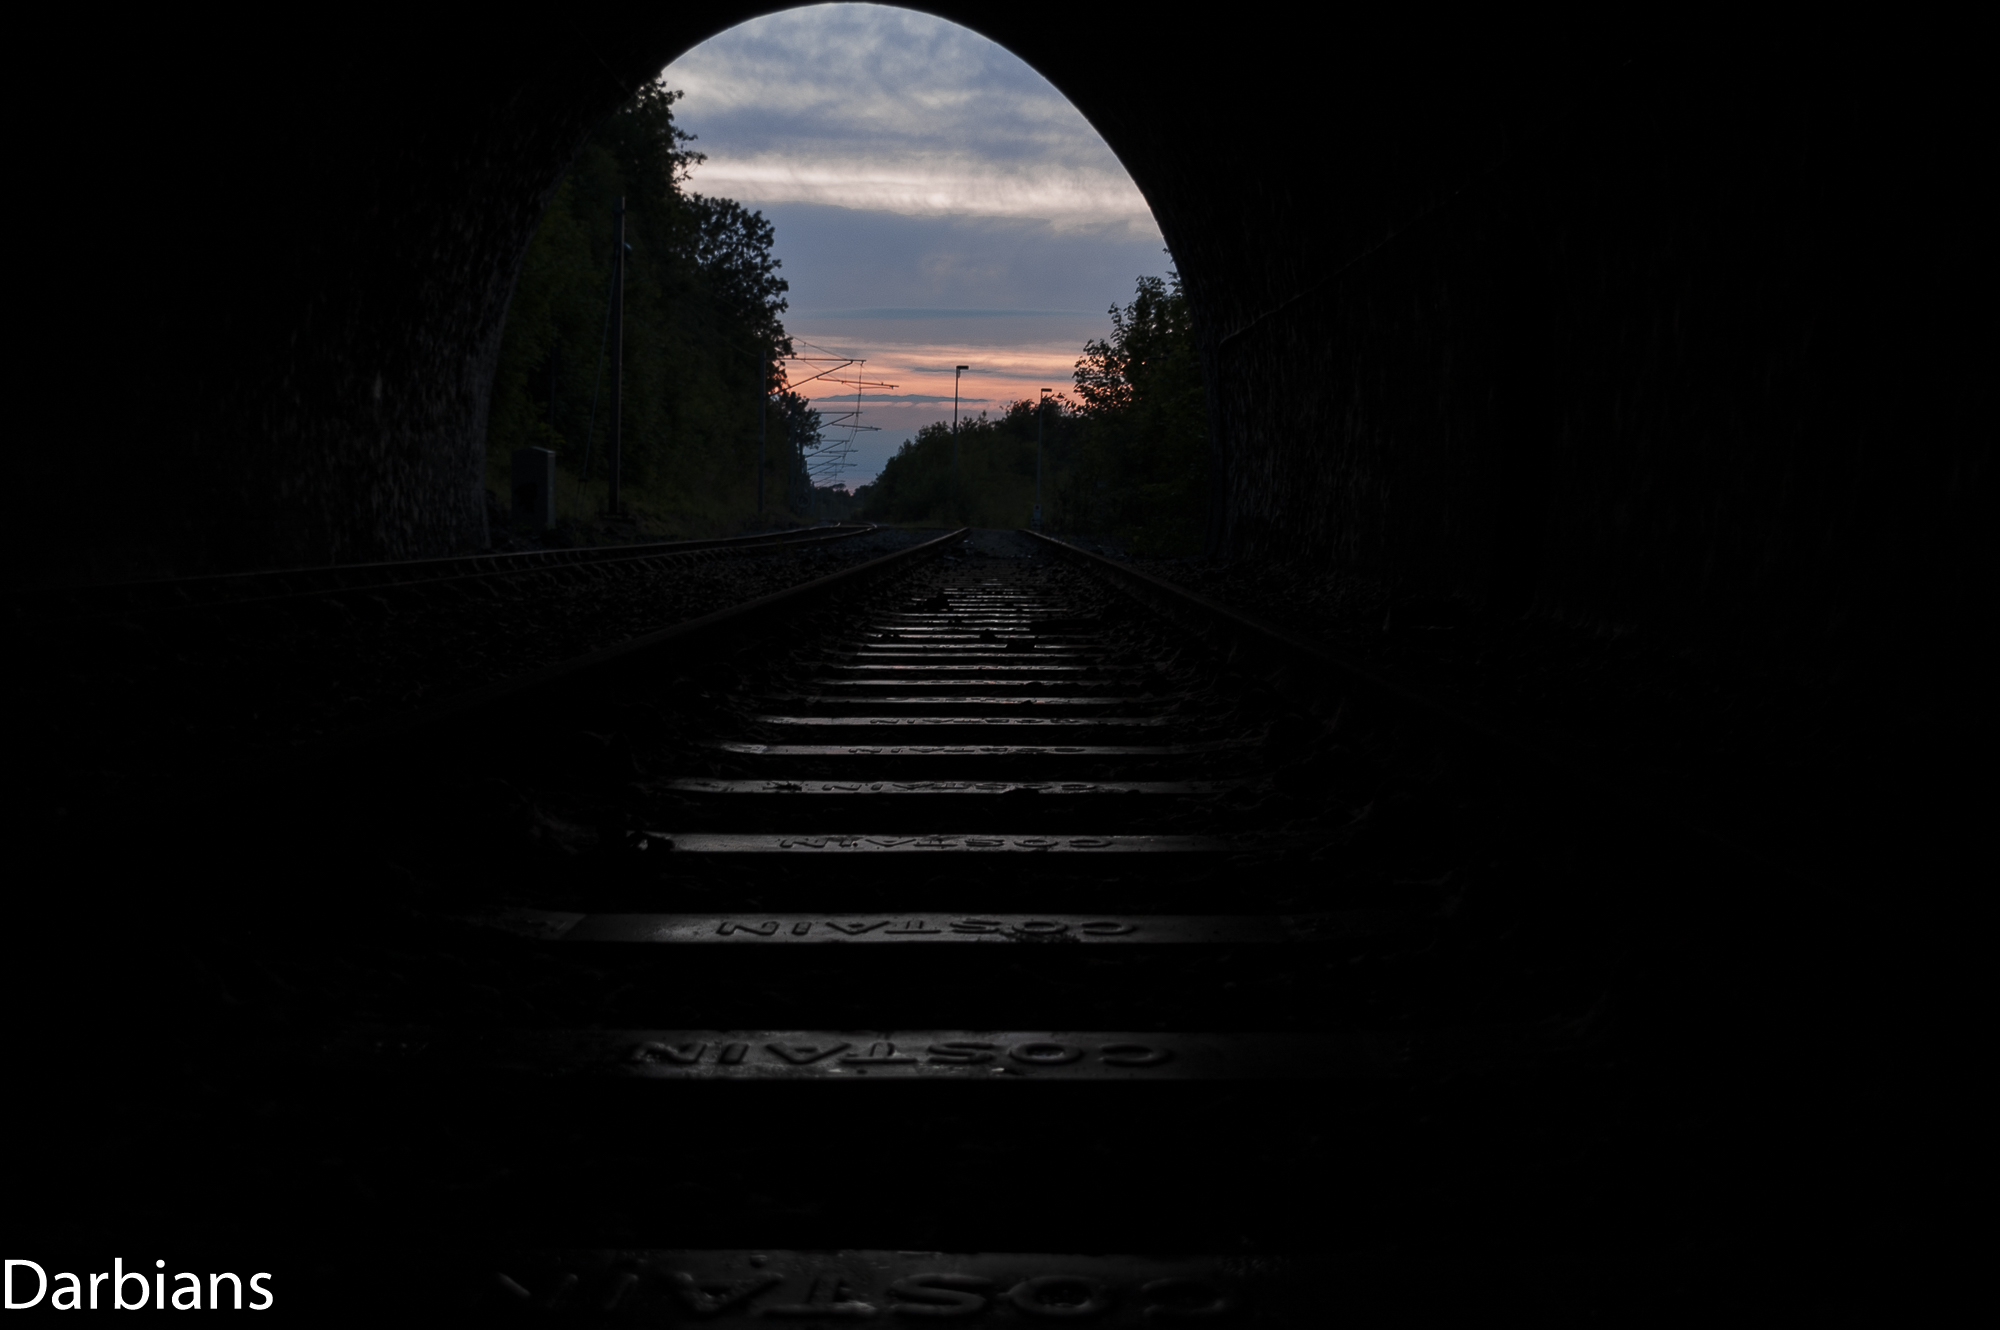 Old Dalby Test Track. Asfordby Tunnel. Sunset